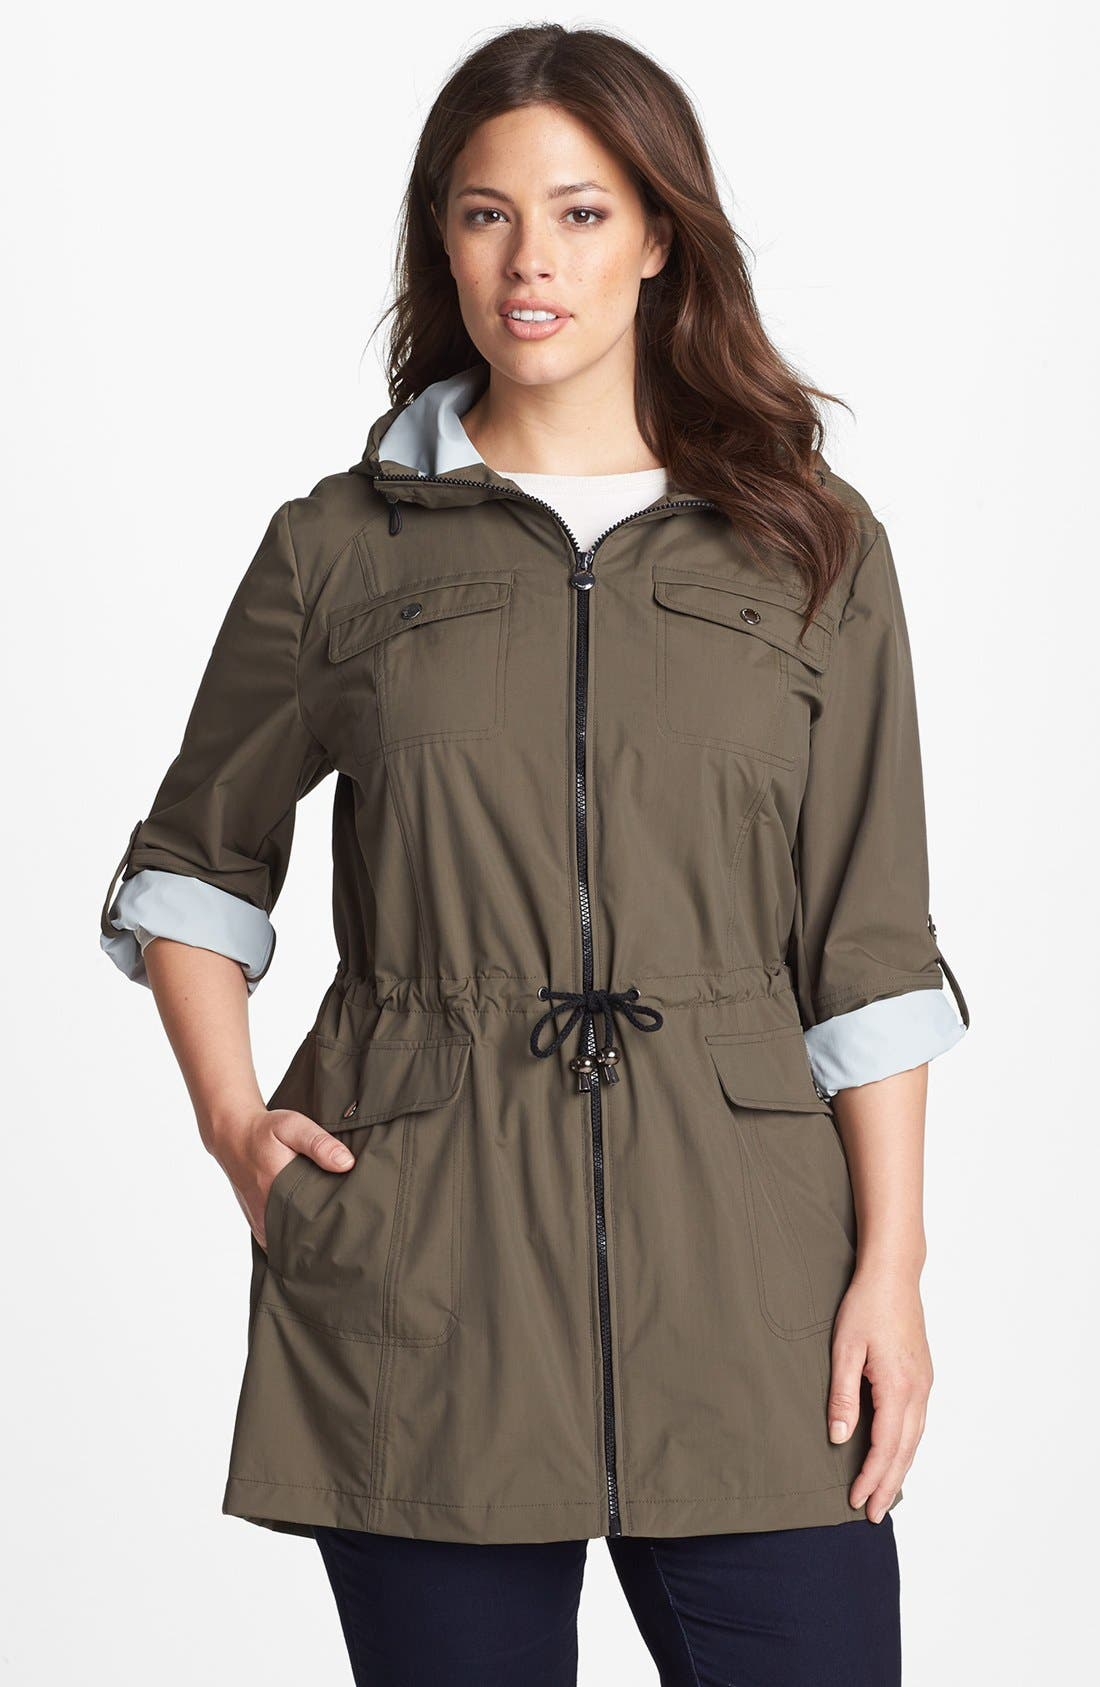 Alternate Image 1 Selected - Laundry by Shelli Segal 'Drip Dry' Roll Sleeve Anorak